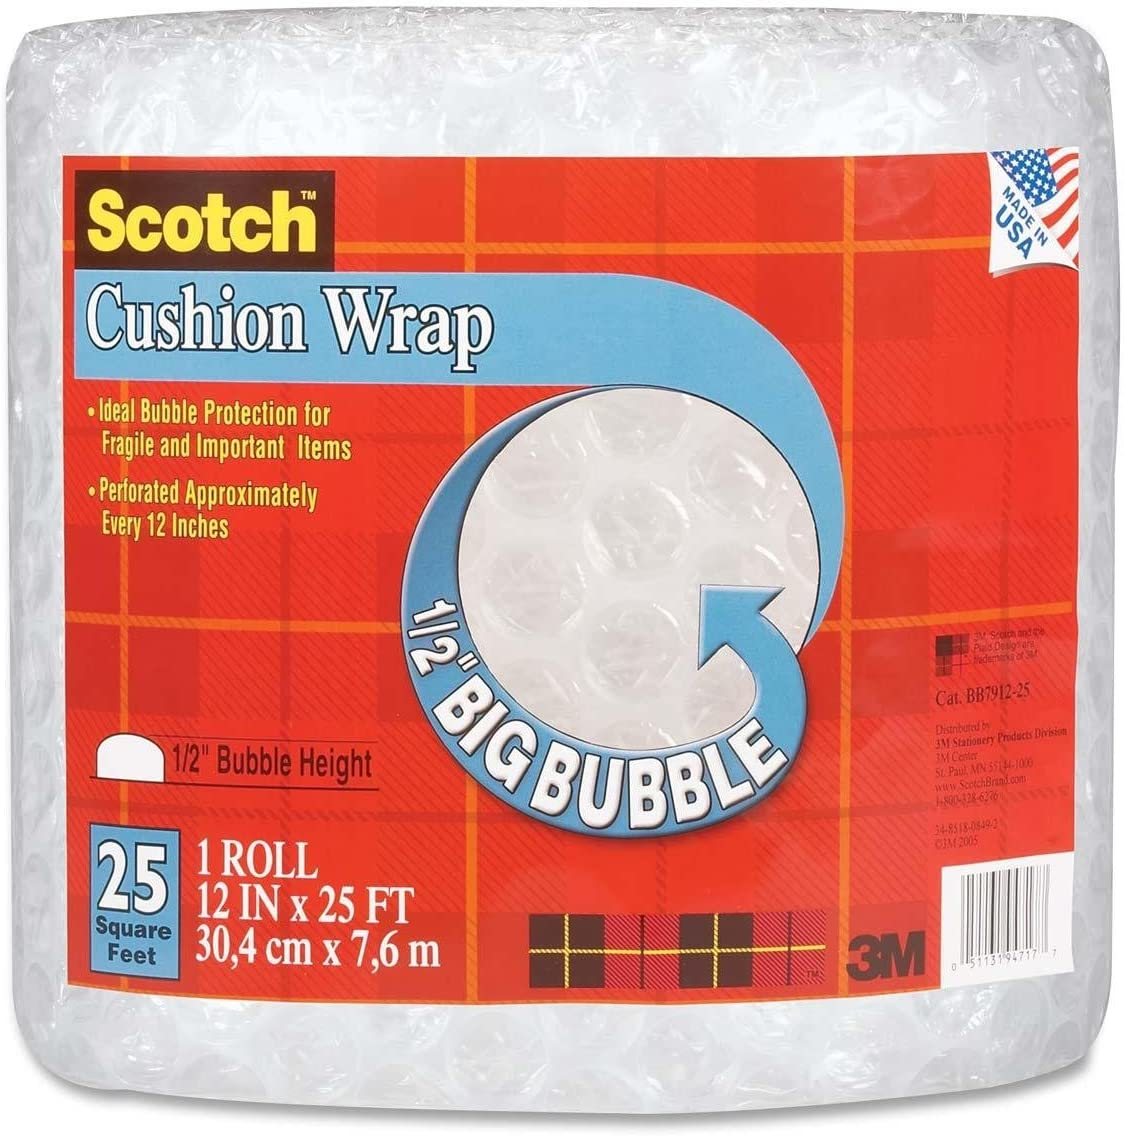 Scotch Cushion Wrap, 12 Inches x 25 Feet, 1/2-Inch Bubble (BB7912-25)